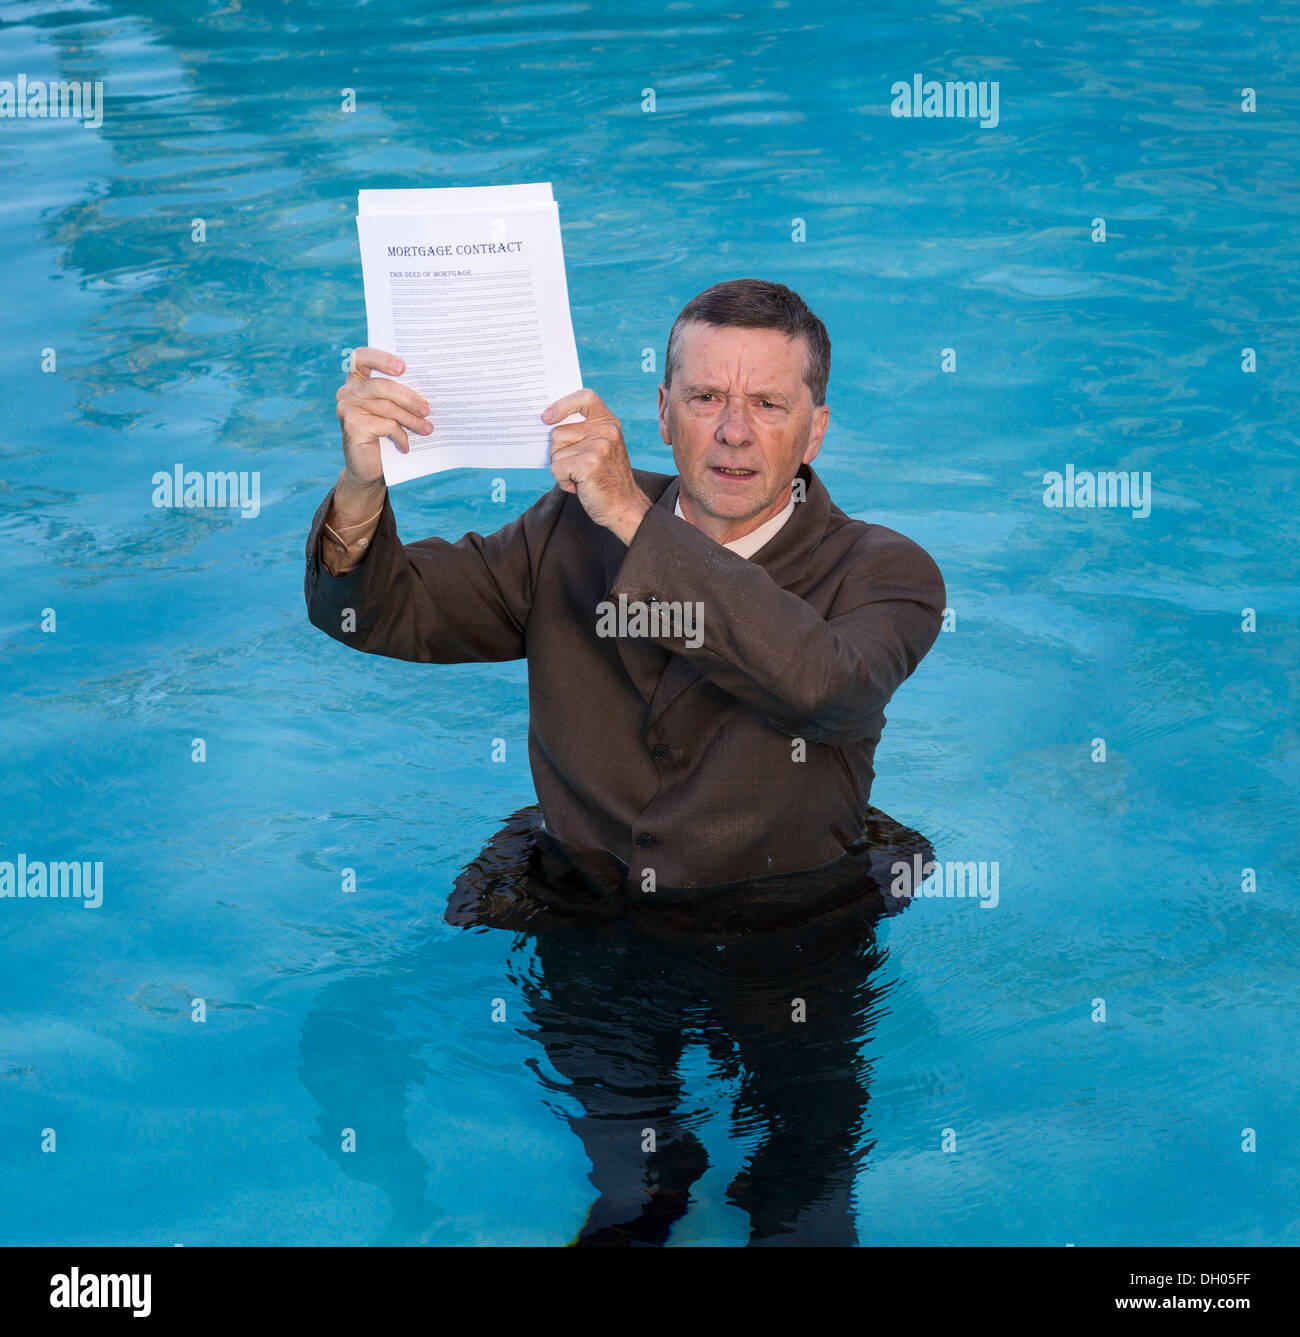 Businessman in suit in water worried about mortgage payments - Stock Image